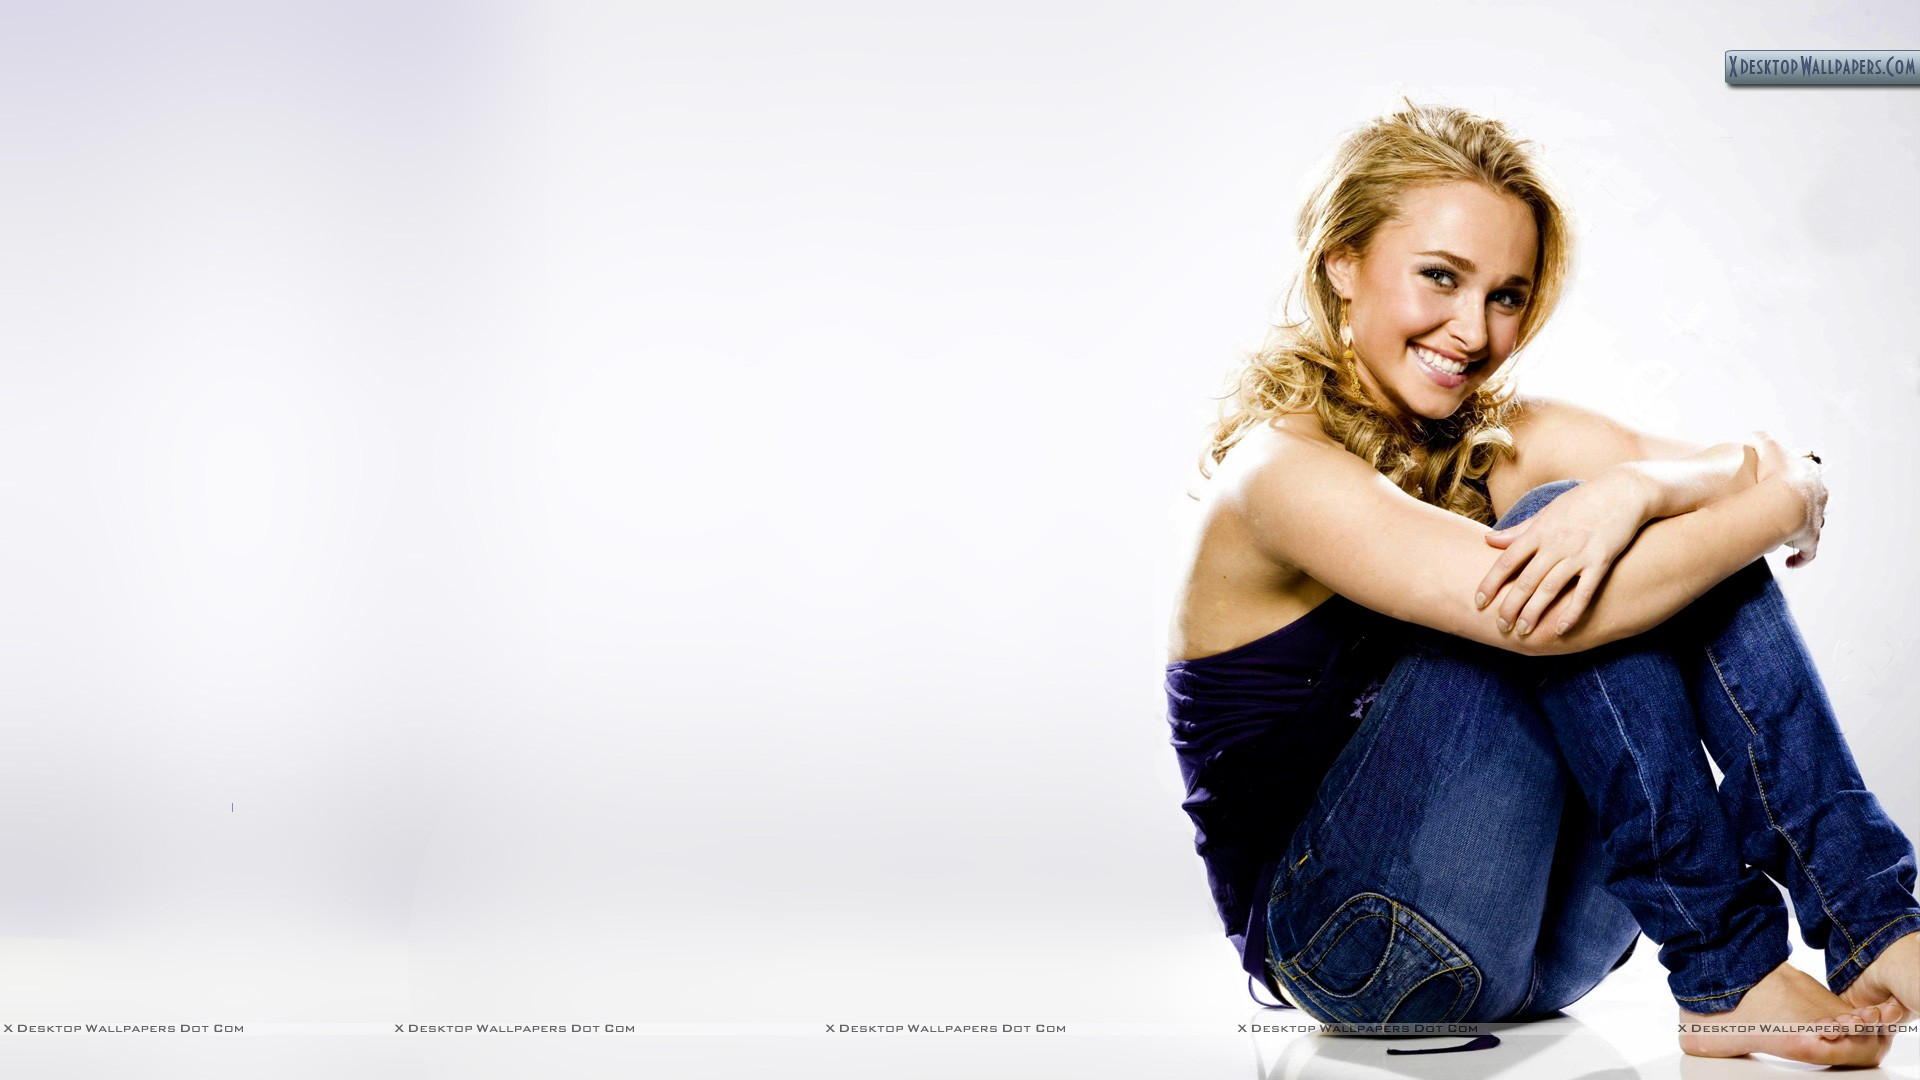 Hayden Panettiere Sitting In Blue Jeans And Top Wallpaper 1920x1080